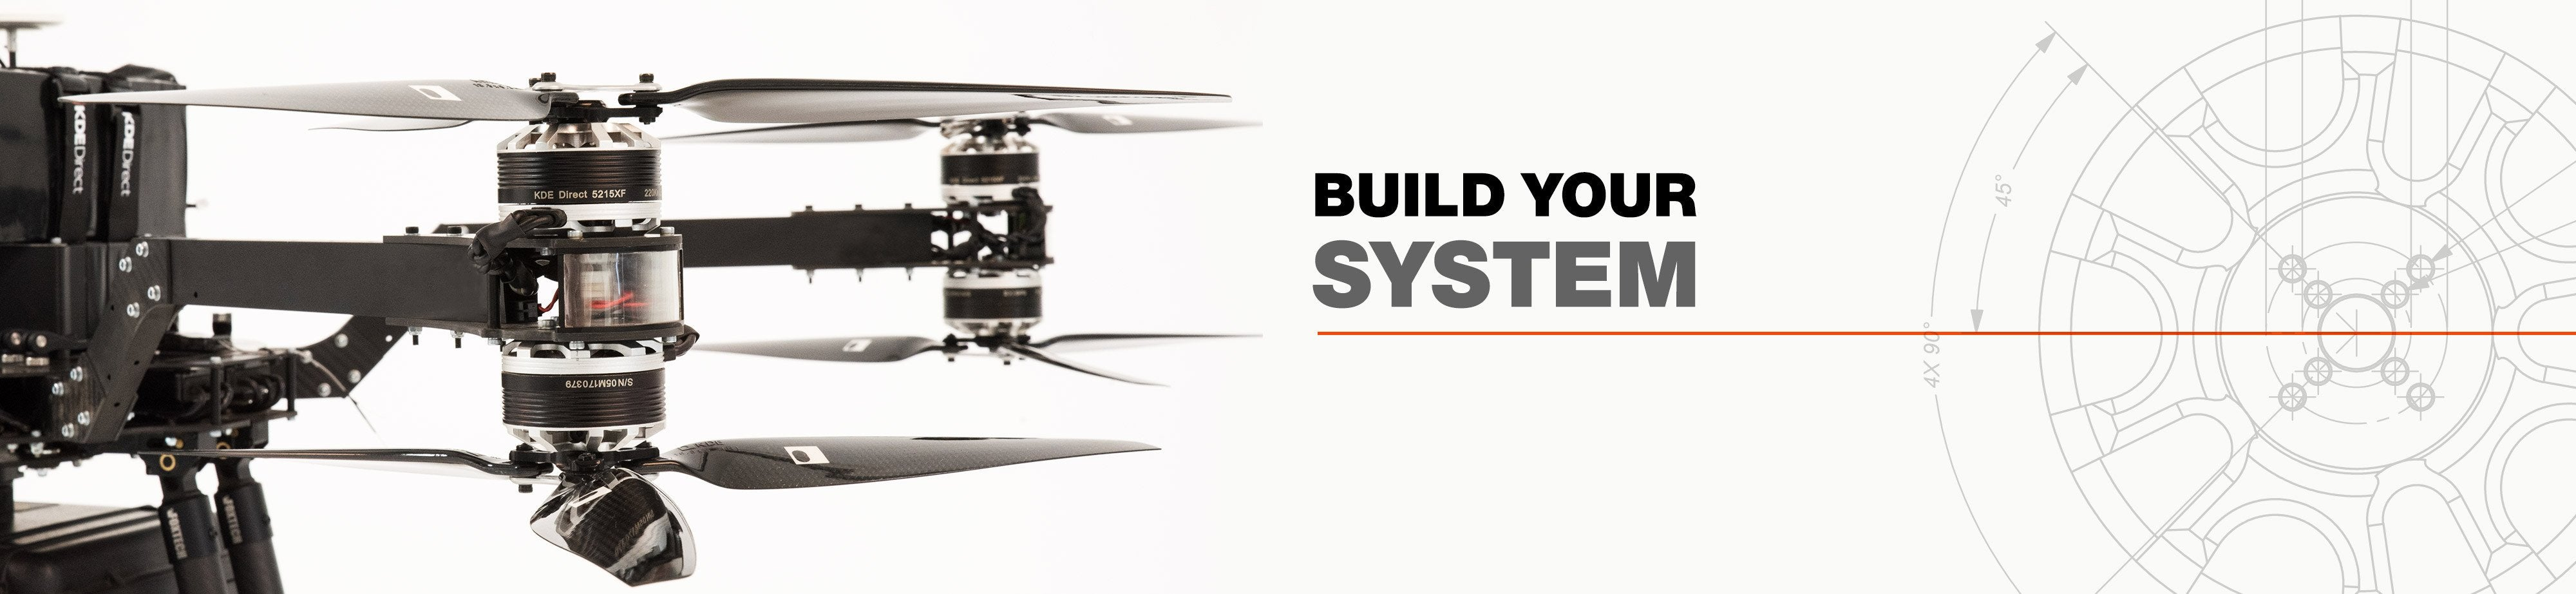 Build Your System Banner